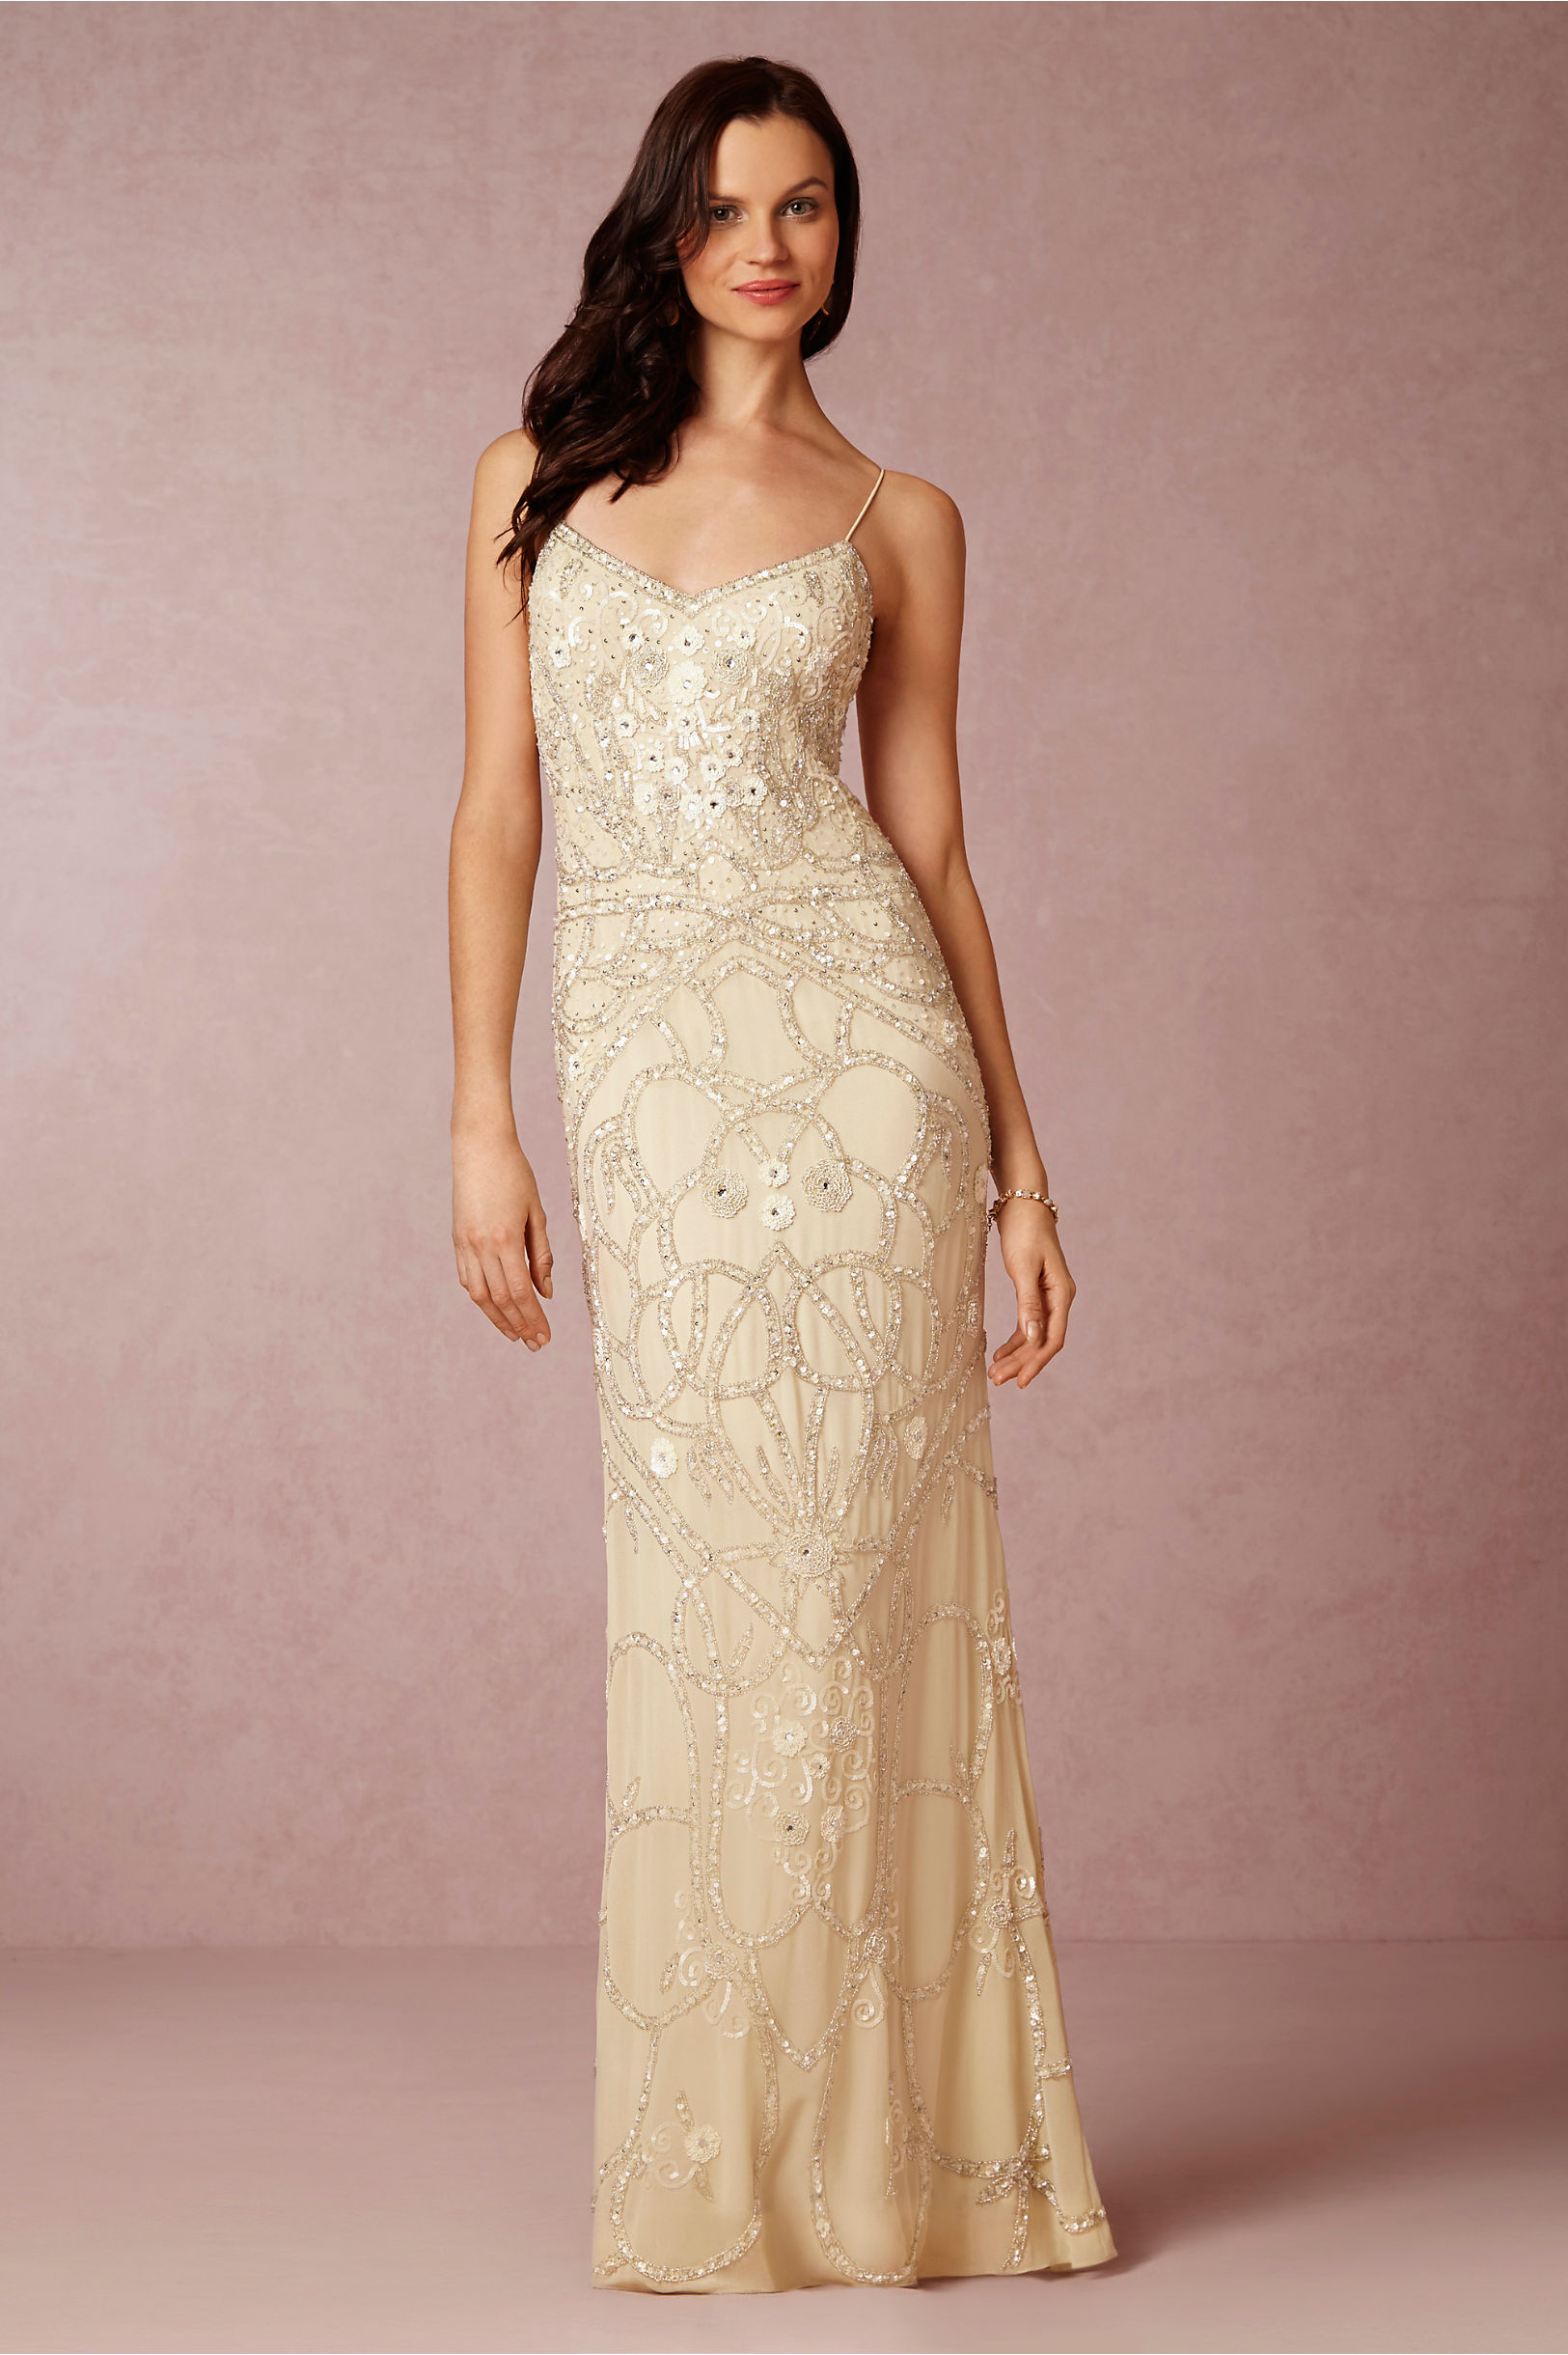 Aria Gown in Sale | BHLDN